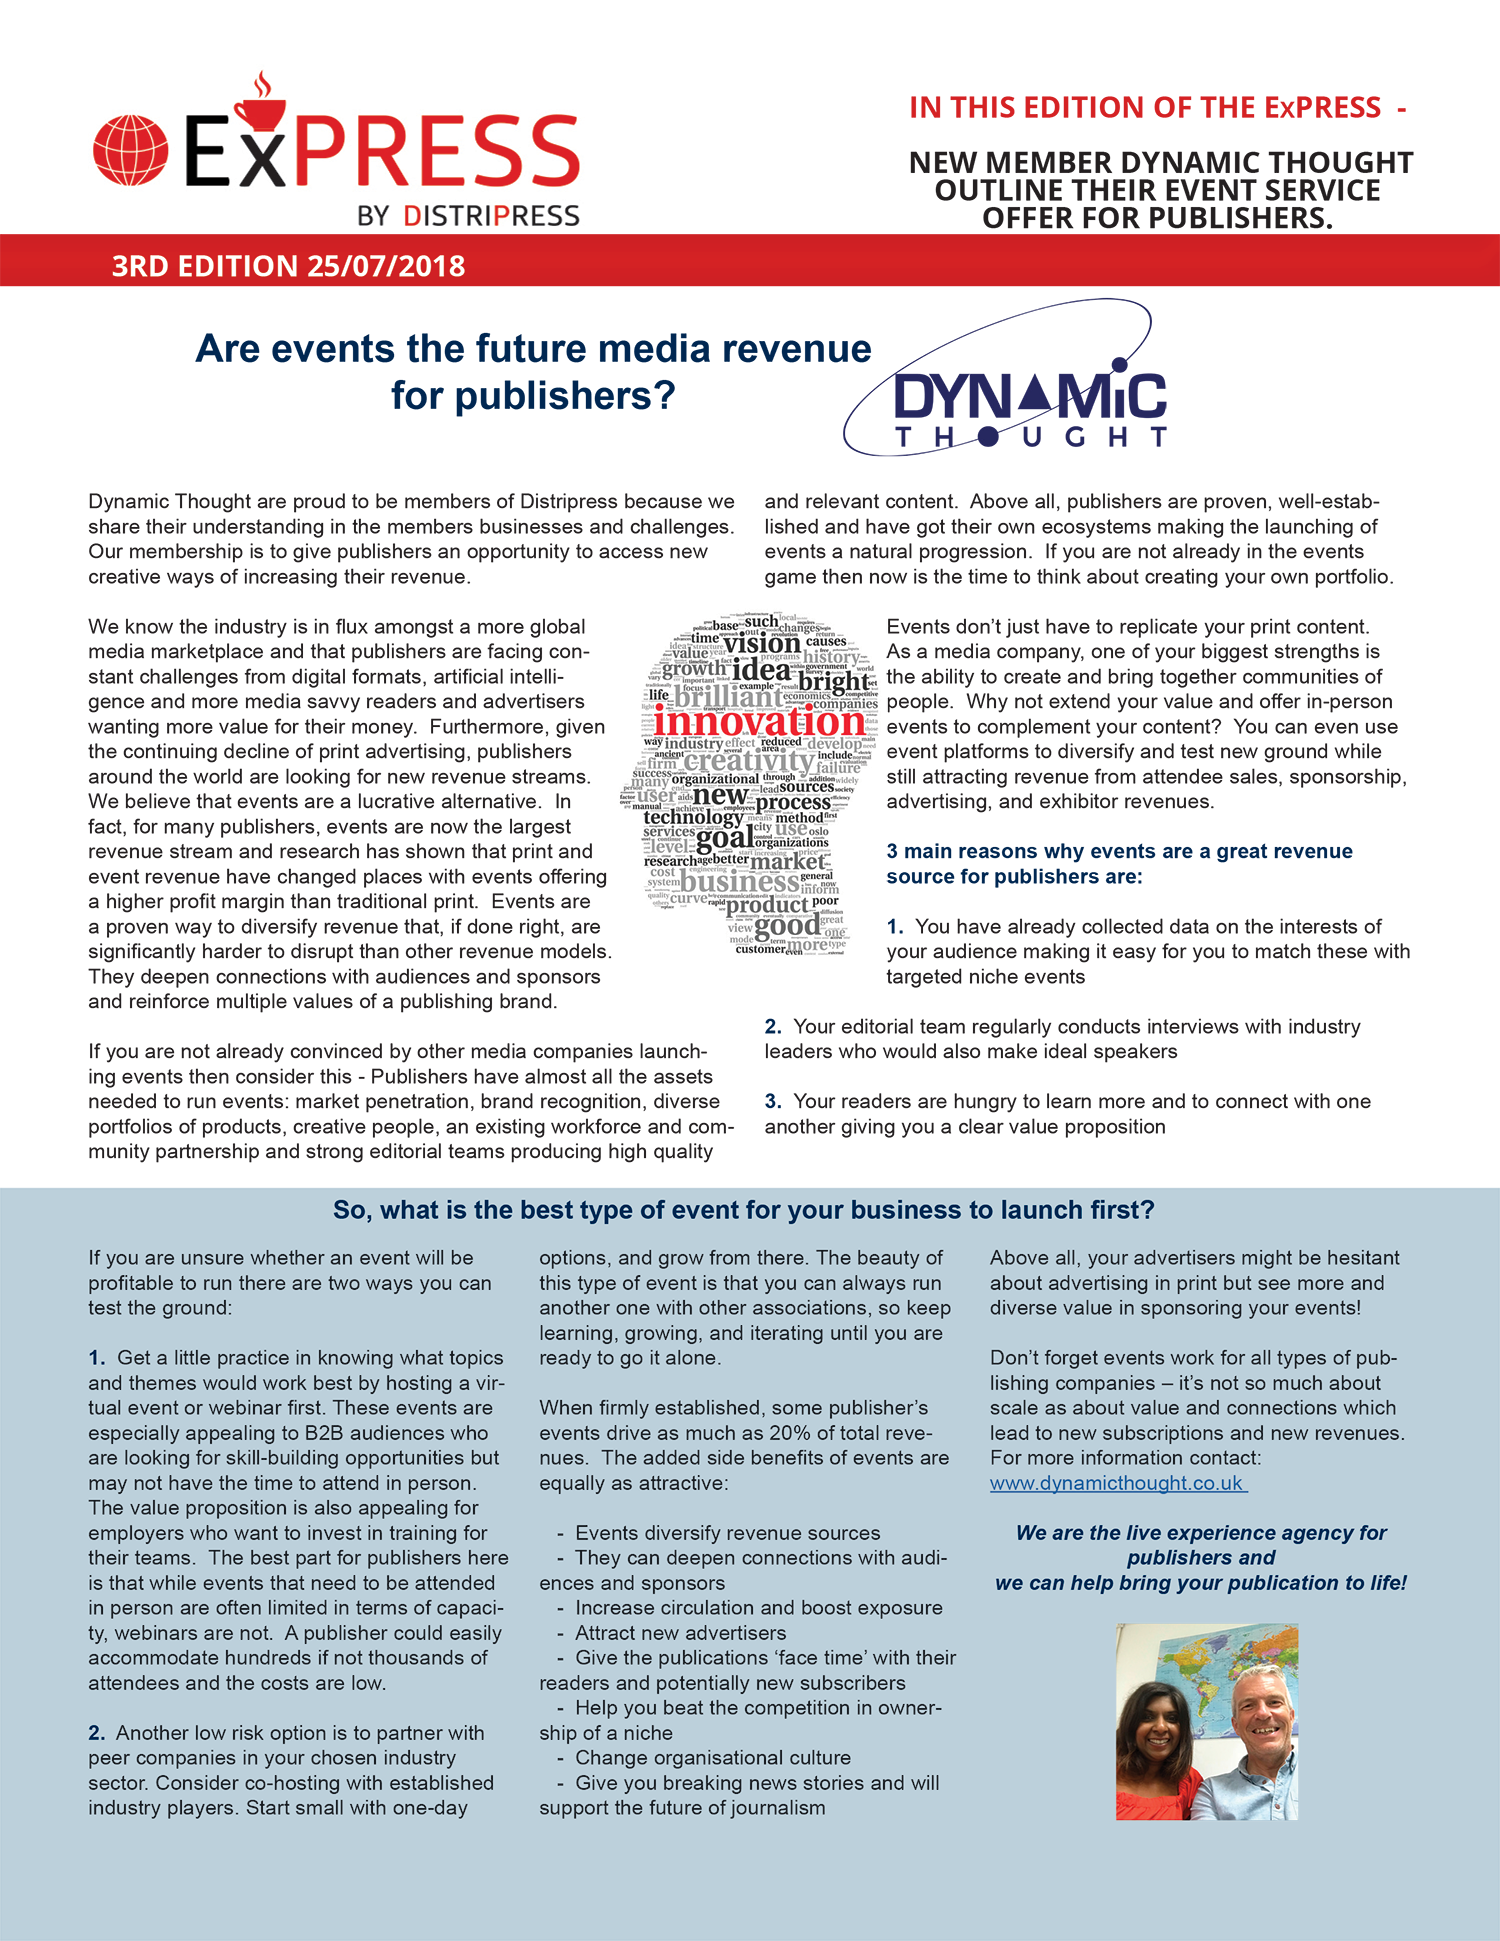 PDF converted to image for displaying the article on the web.